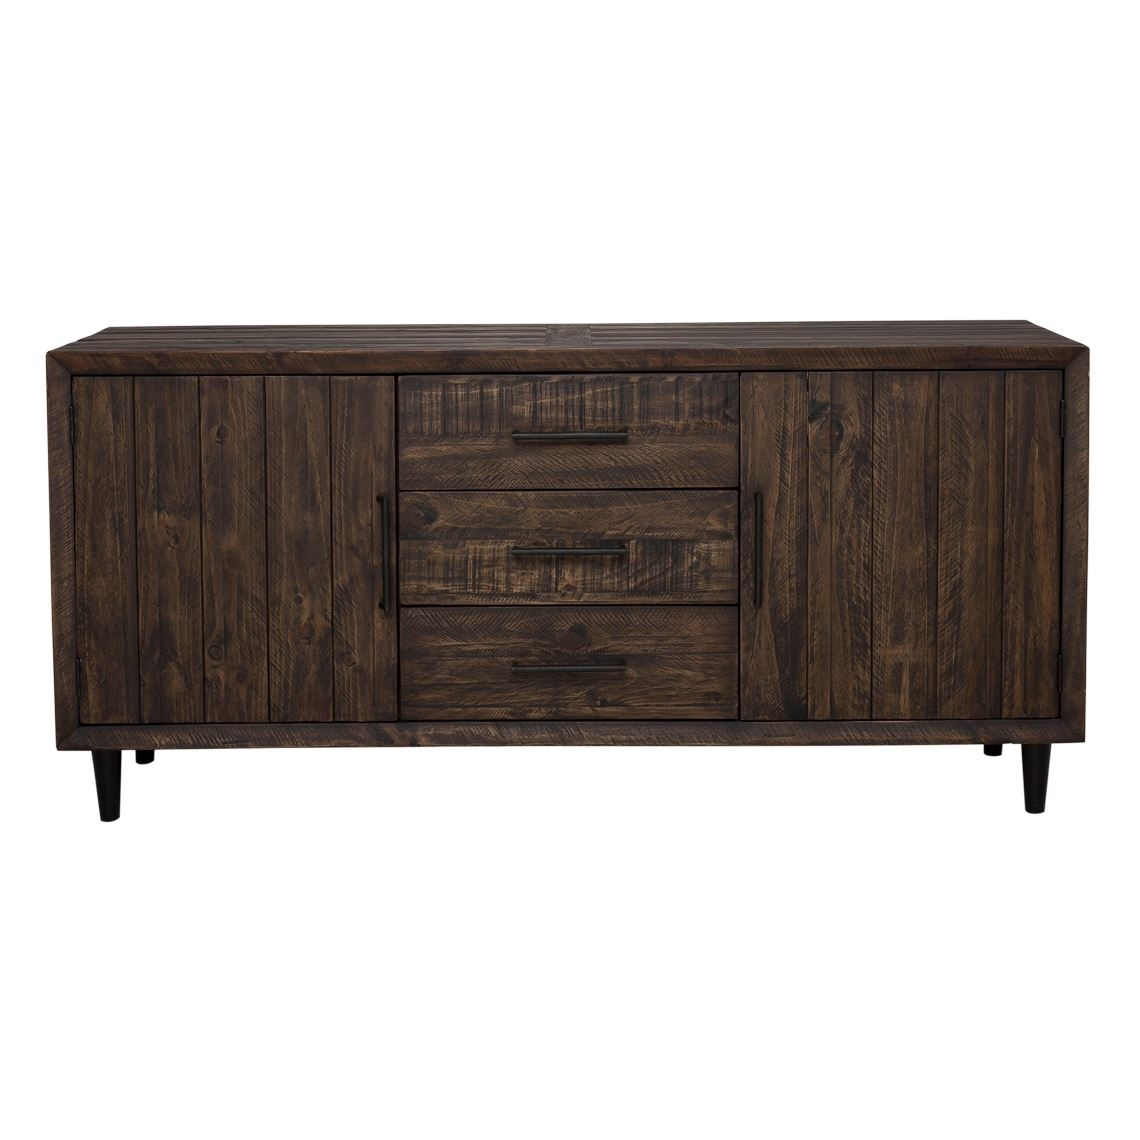 Freedom Furniture And Homewares intended for Parquet Sideboards (Image 4 of 30)